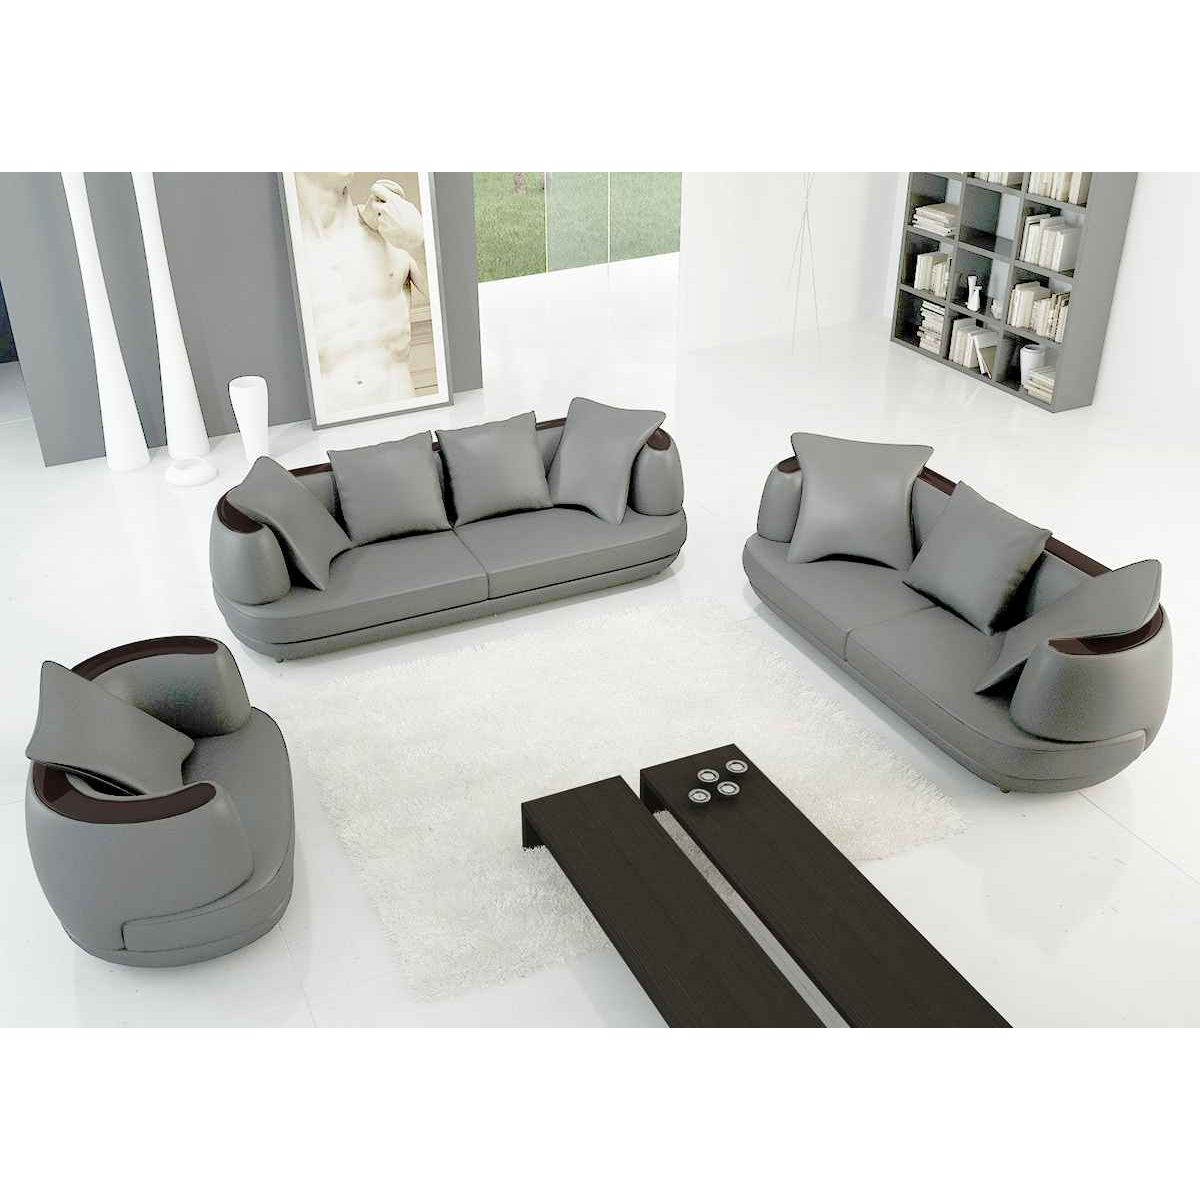 deco in paris ensemble canape 3 2 1 places en cuir gris clair ryga ryga gris clair 321. Black Bedroom Furniture Sets. Home Design Ideas